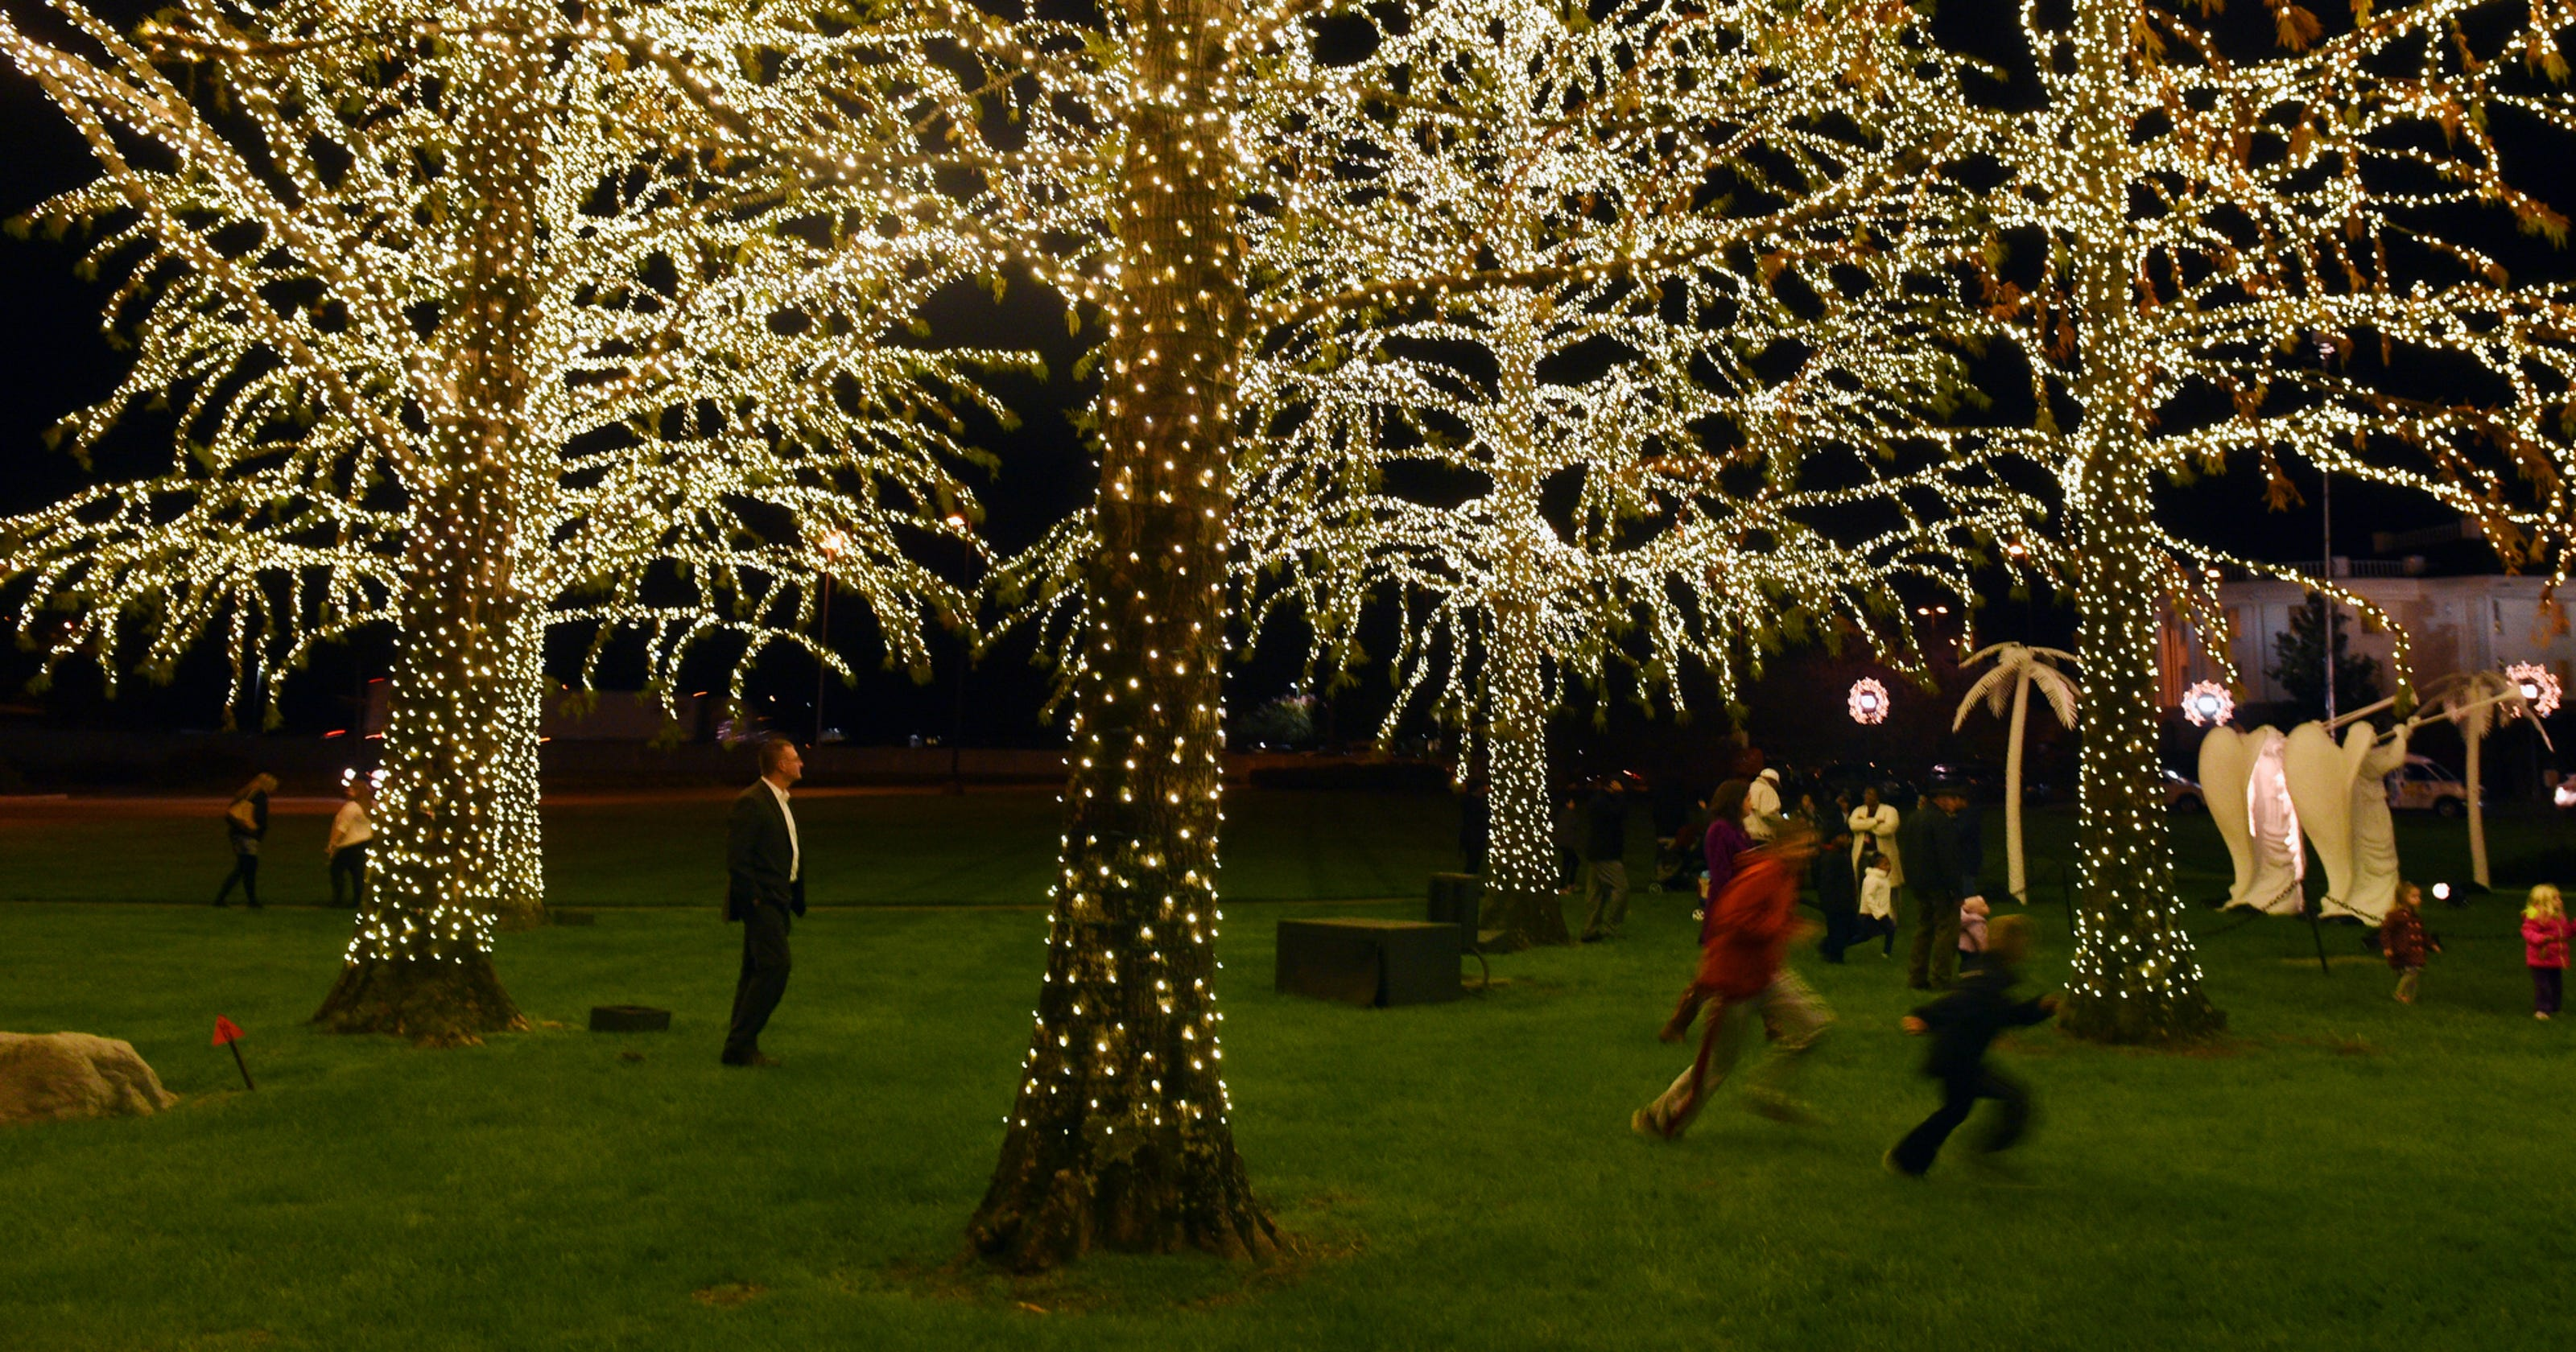 nashville things to do more than 17 free holiday events through new years